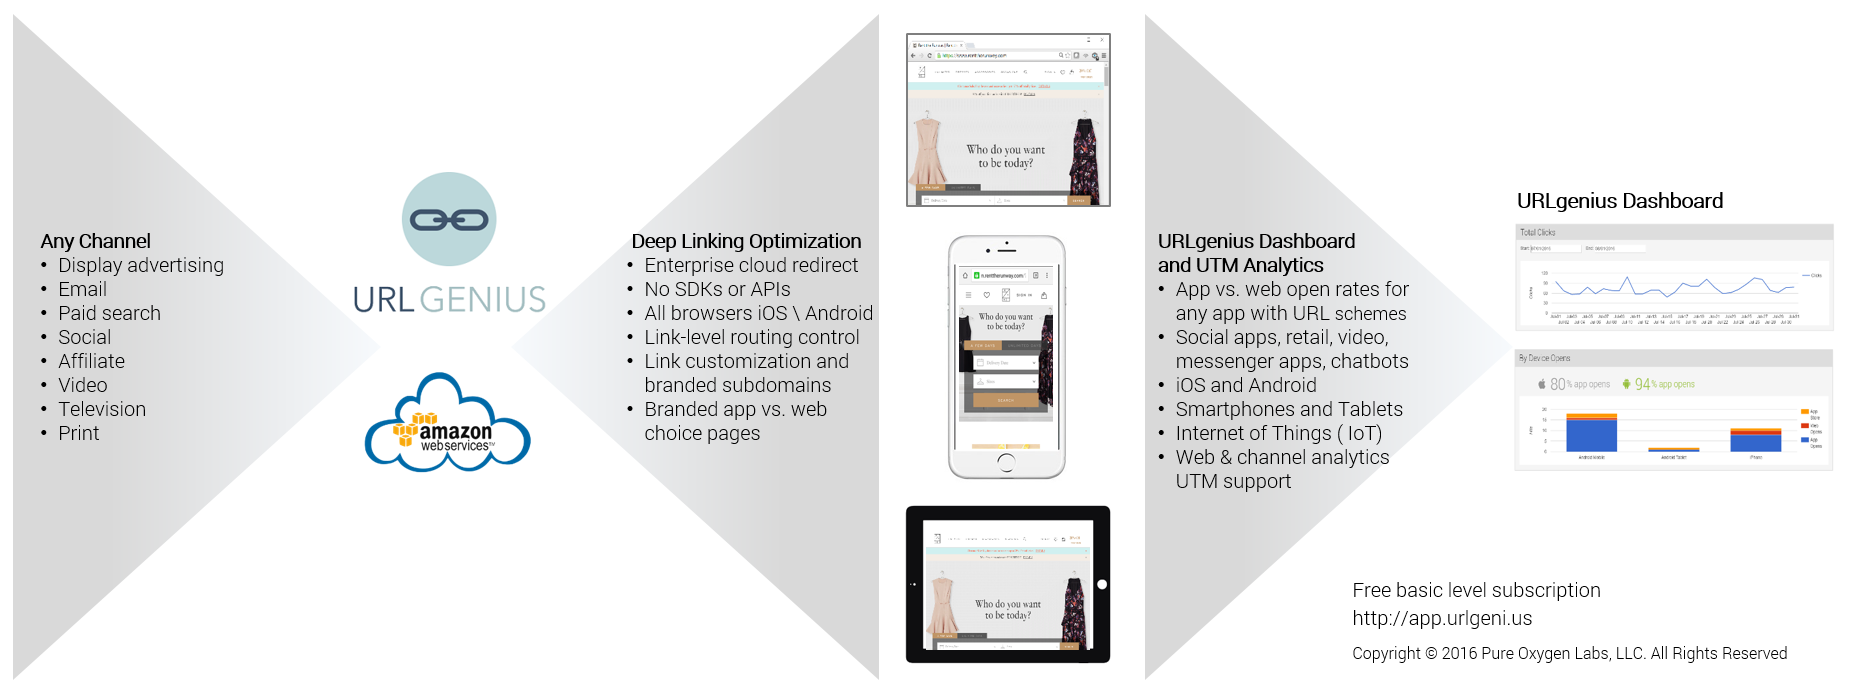 URLgenius Cloud-Based Mobile App Deep Linking for iOS and Android